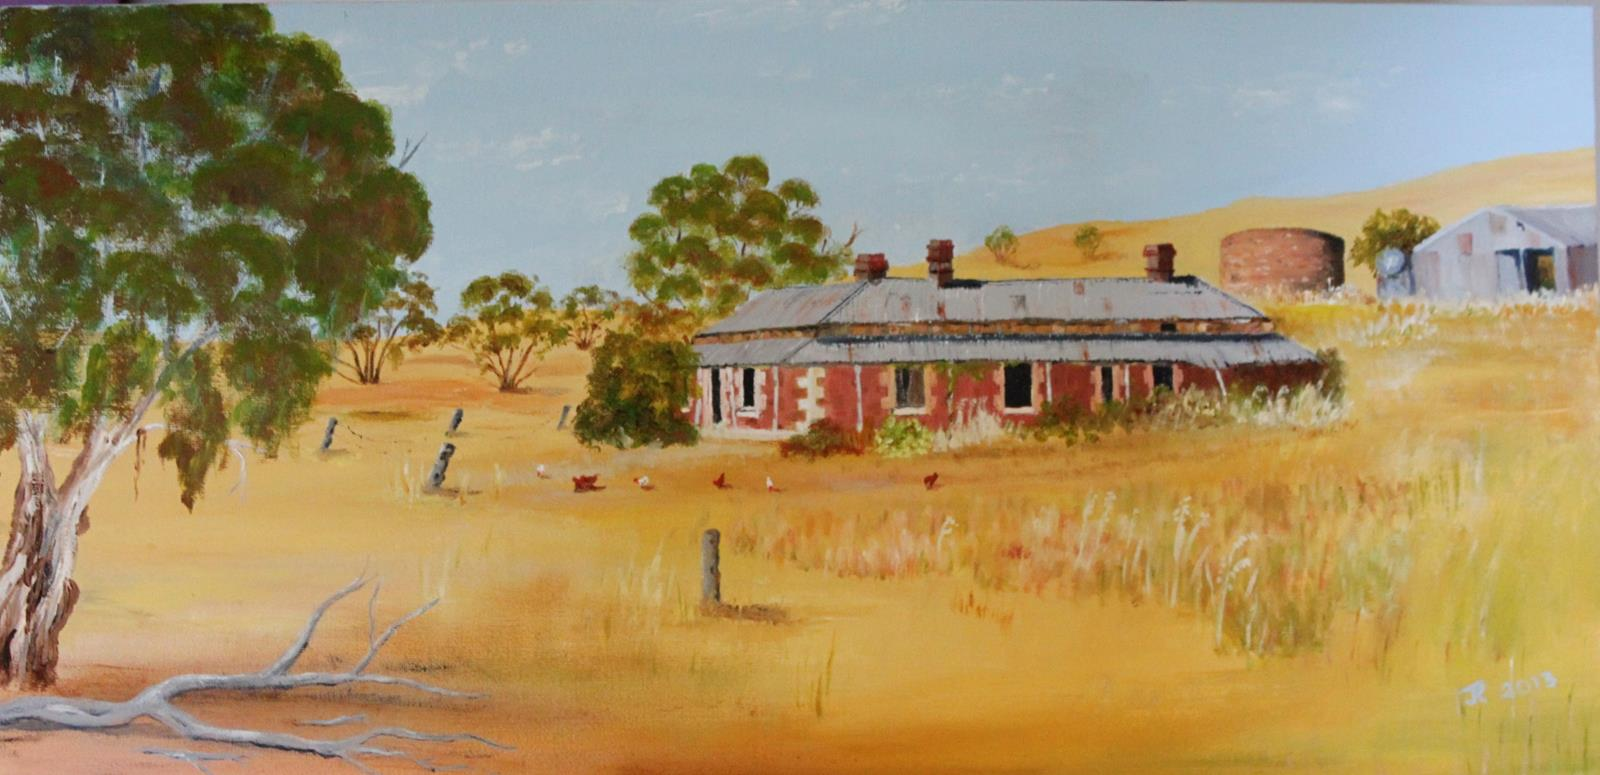 Aylesbury Farm, near Georgetown South Australia